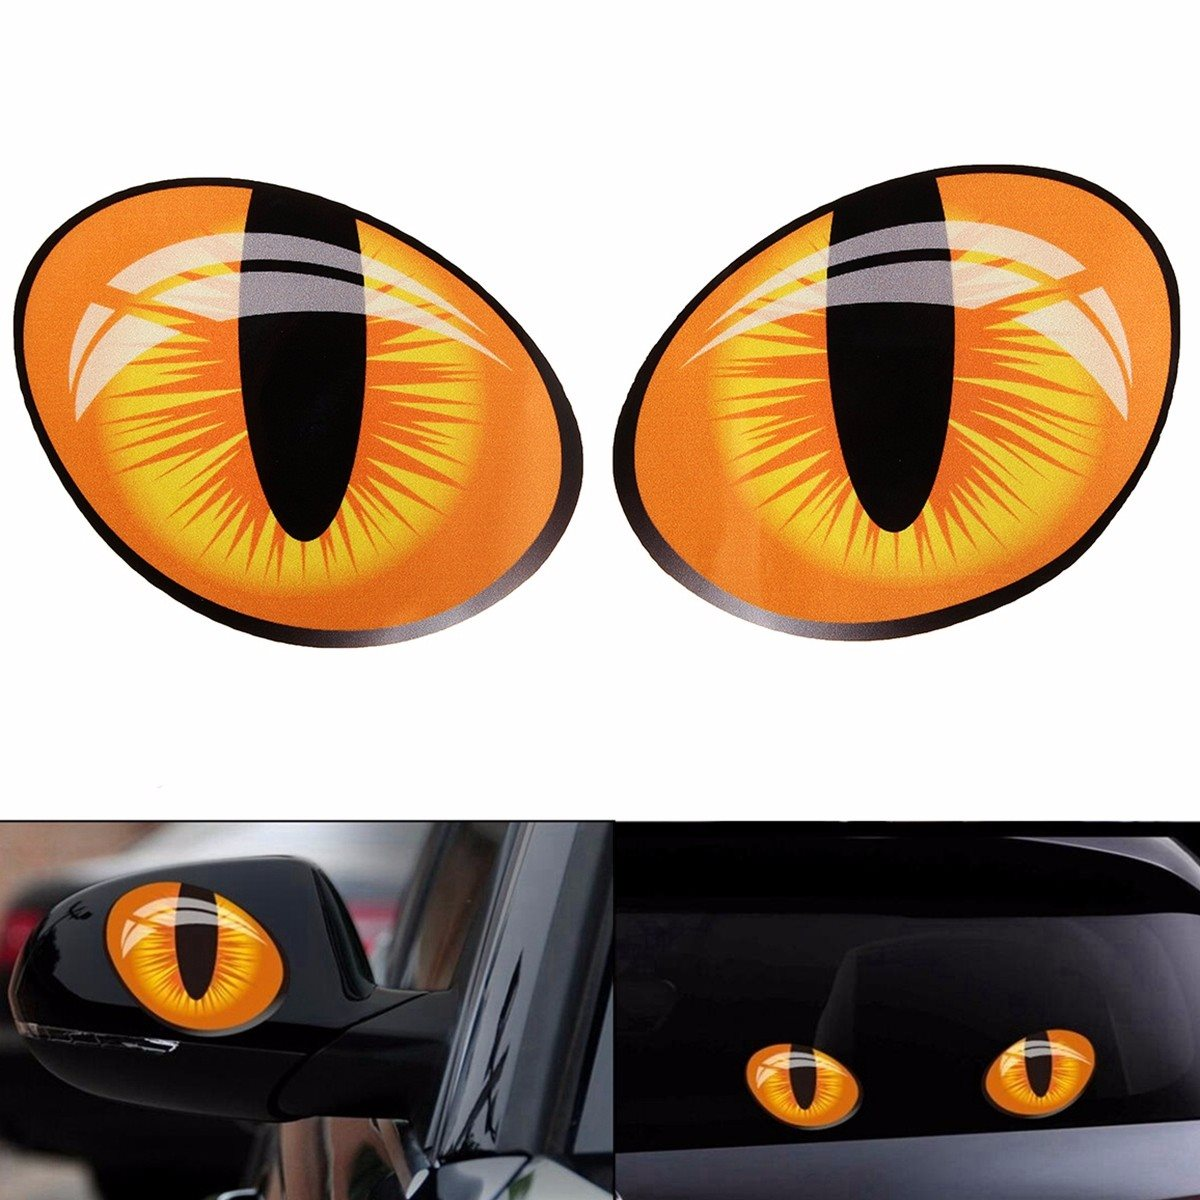 Pair 3D Funny Reflective Cat Eyes Car Stickers Truck Head Engine Rearview Mirror Window Cover Door Decal Graphics 10 x 8cm 58 cm x 50 5cm novelty skydiving sky dive man guy car sticker for cars side truck window door kayak vinyl decal 8 colors